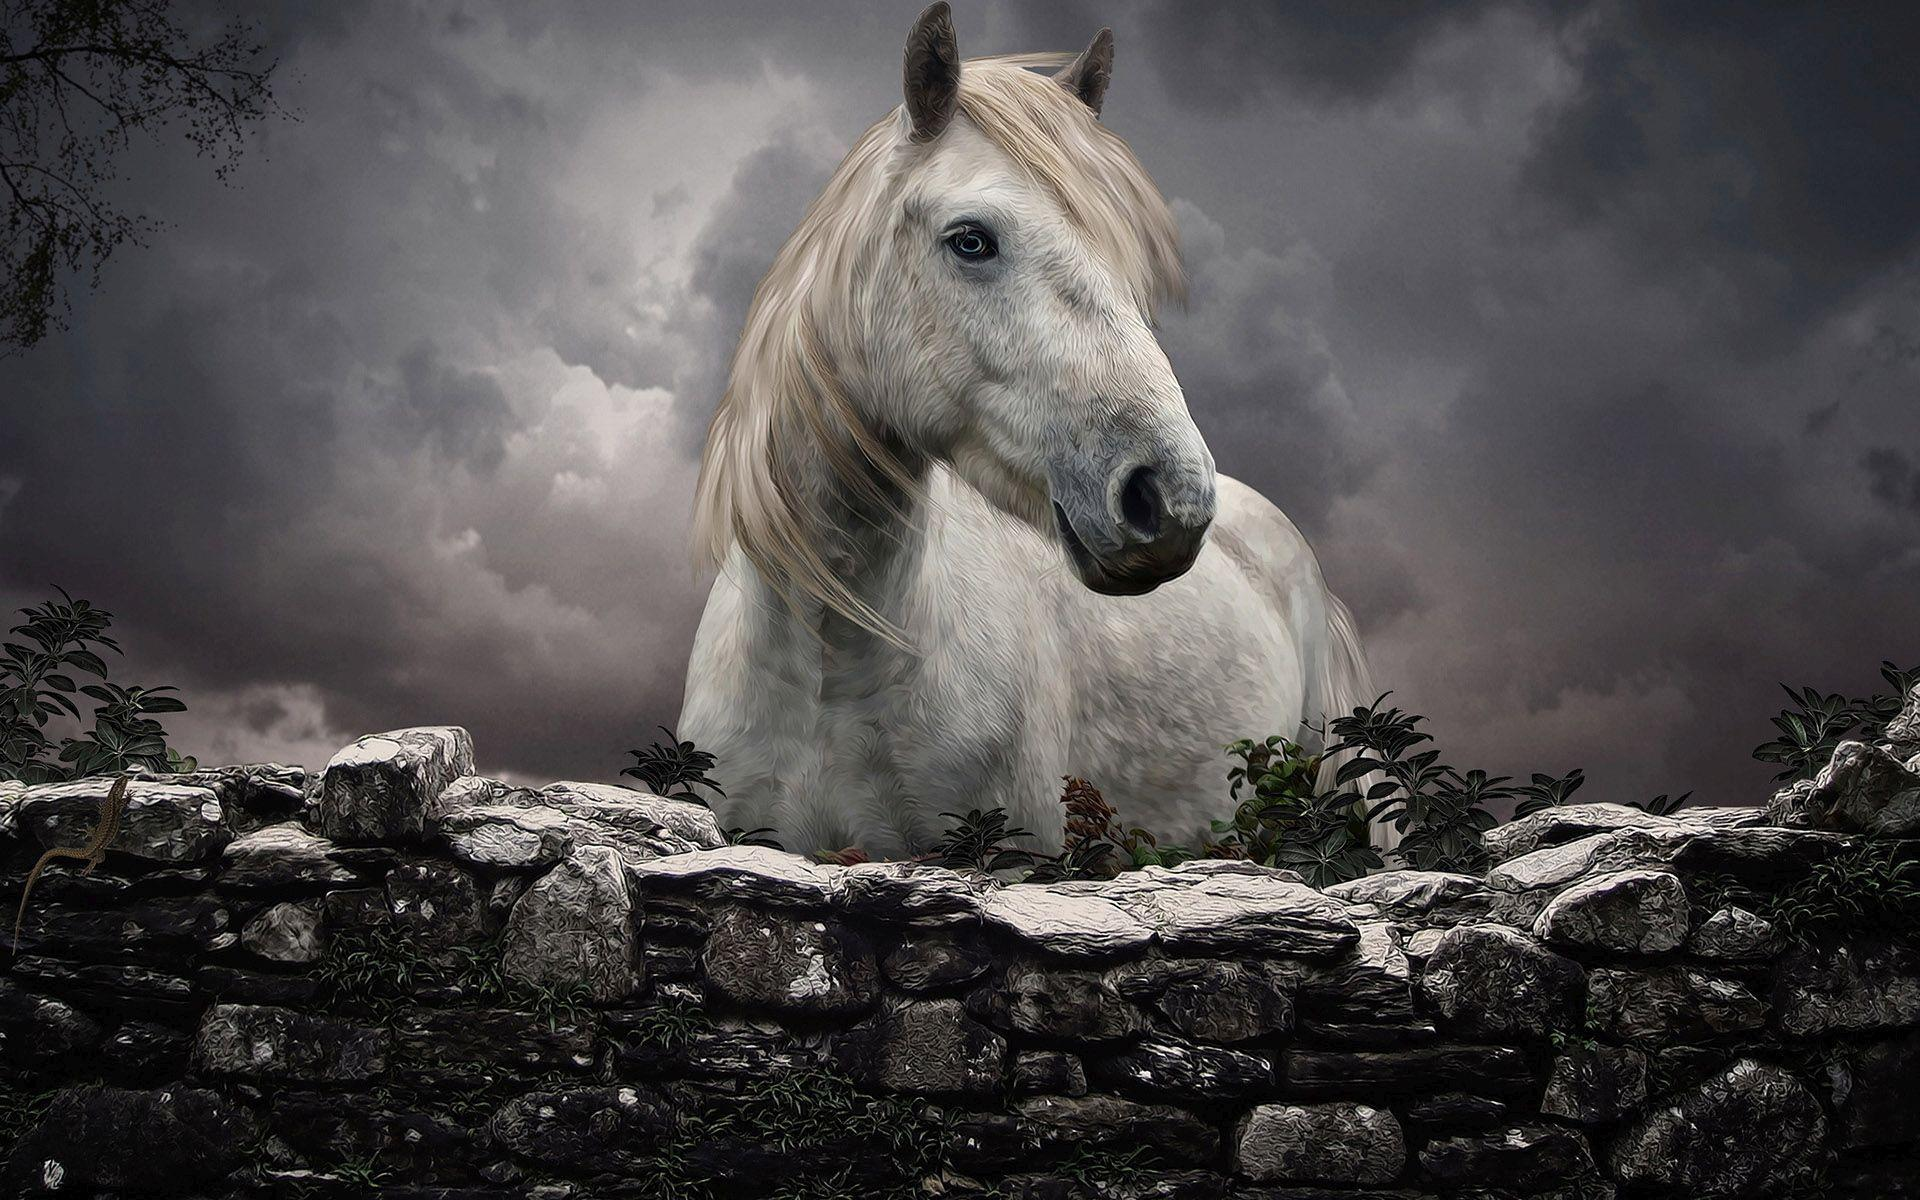 Awesome Car Wallpaper Angles White Horse At The Fence Hd Desktop Wallpaper Widescreen